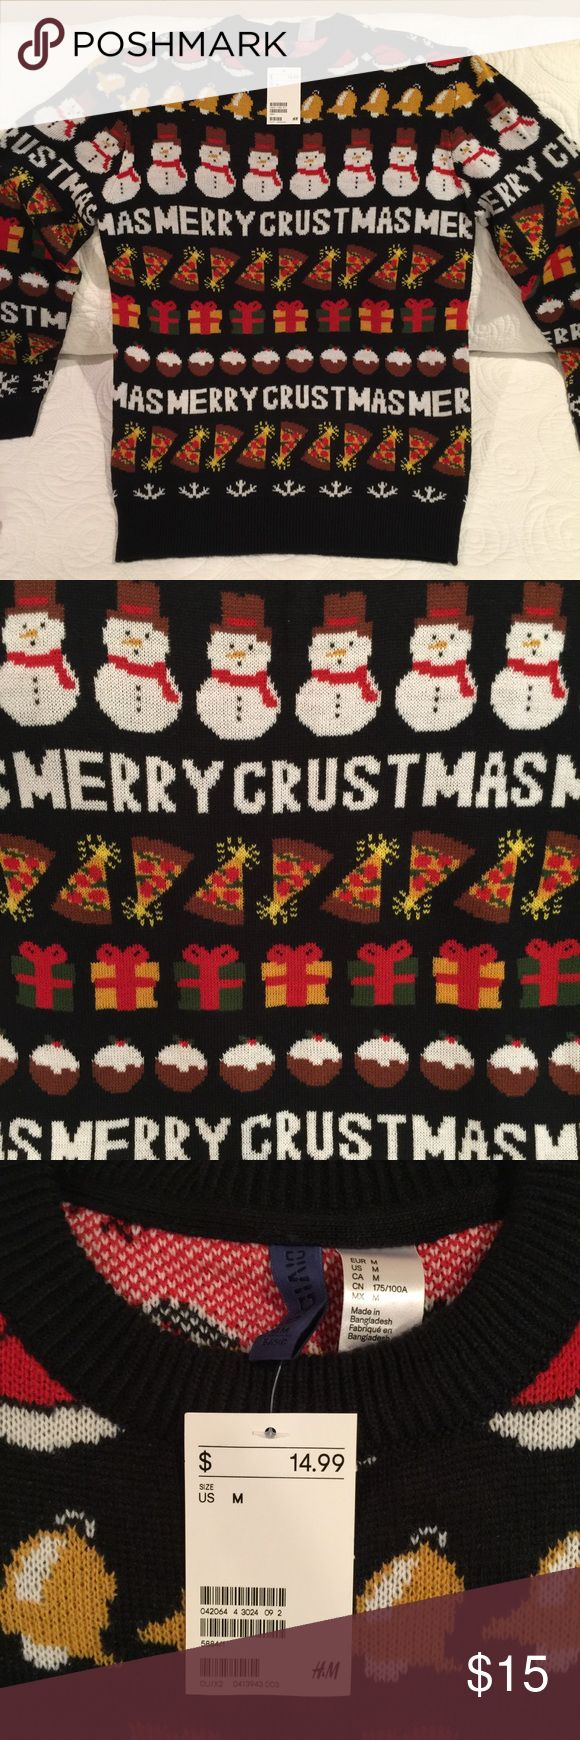 Pizza Ugly Christmas Sweater New with Tags. H&M men's Christmas sweater. Merry Crustmas with Rudolph pizza slices. Super cool sweater. Men's size medium, but great for girls, as well, to wear as a oversized sweater or even a dress. Smoke/pet free home. Open to offers! Bundle and save! H&M Sweaters Crewneck